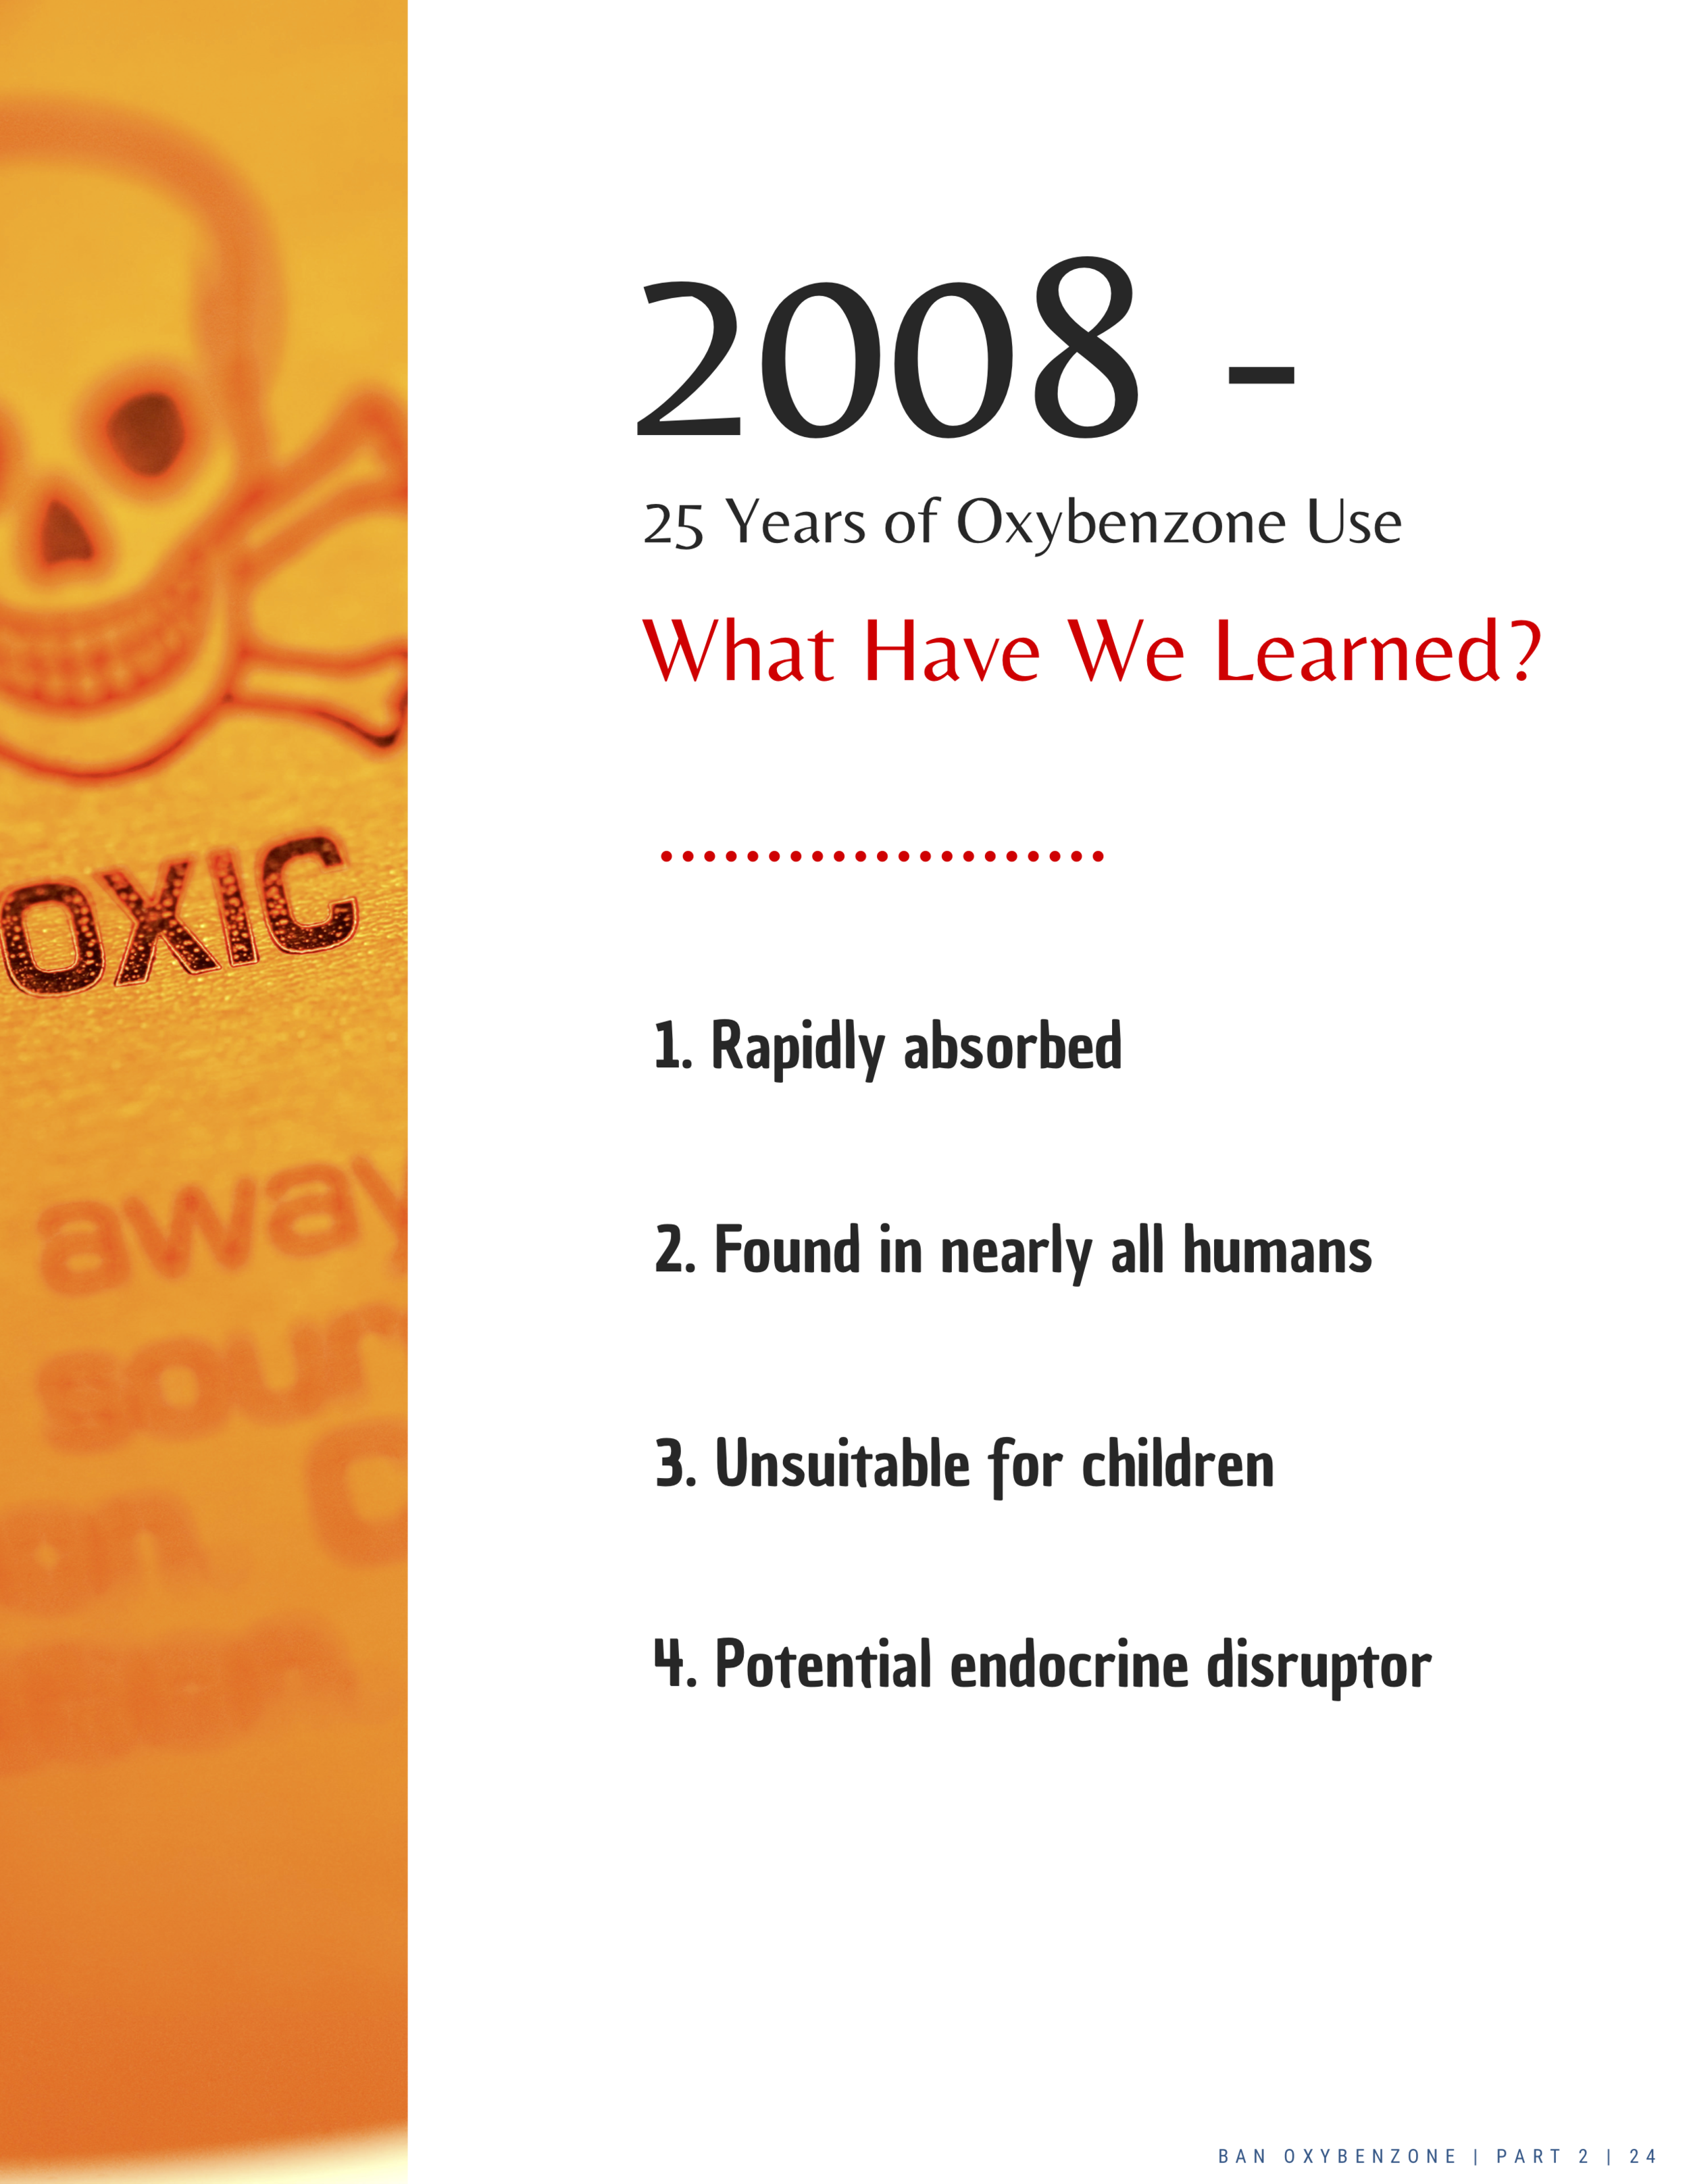 ban-oxybenzone-part-2-2008-what-have-we-learned-24.png